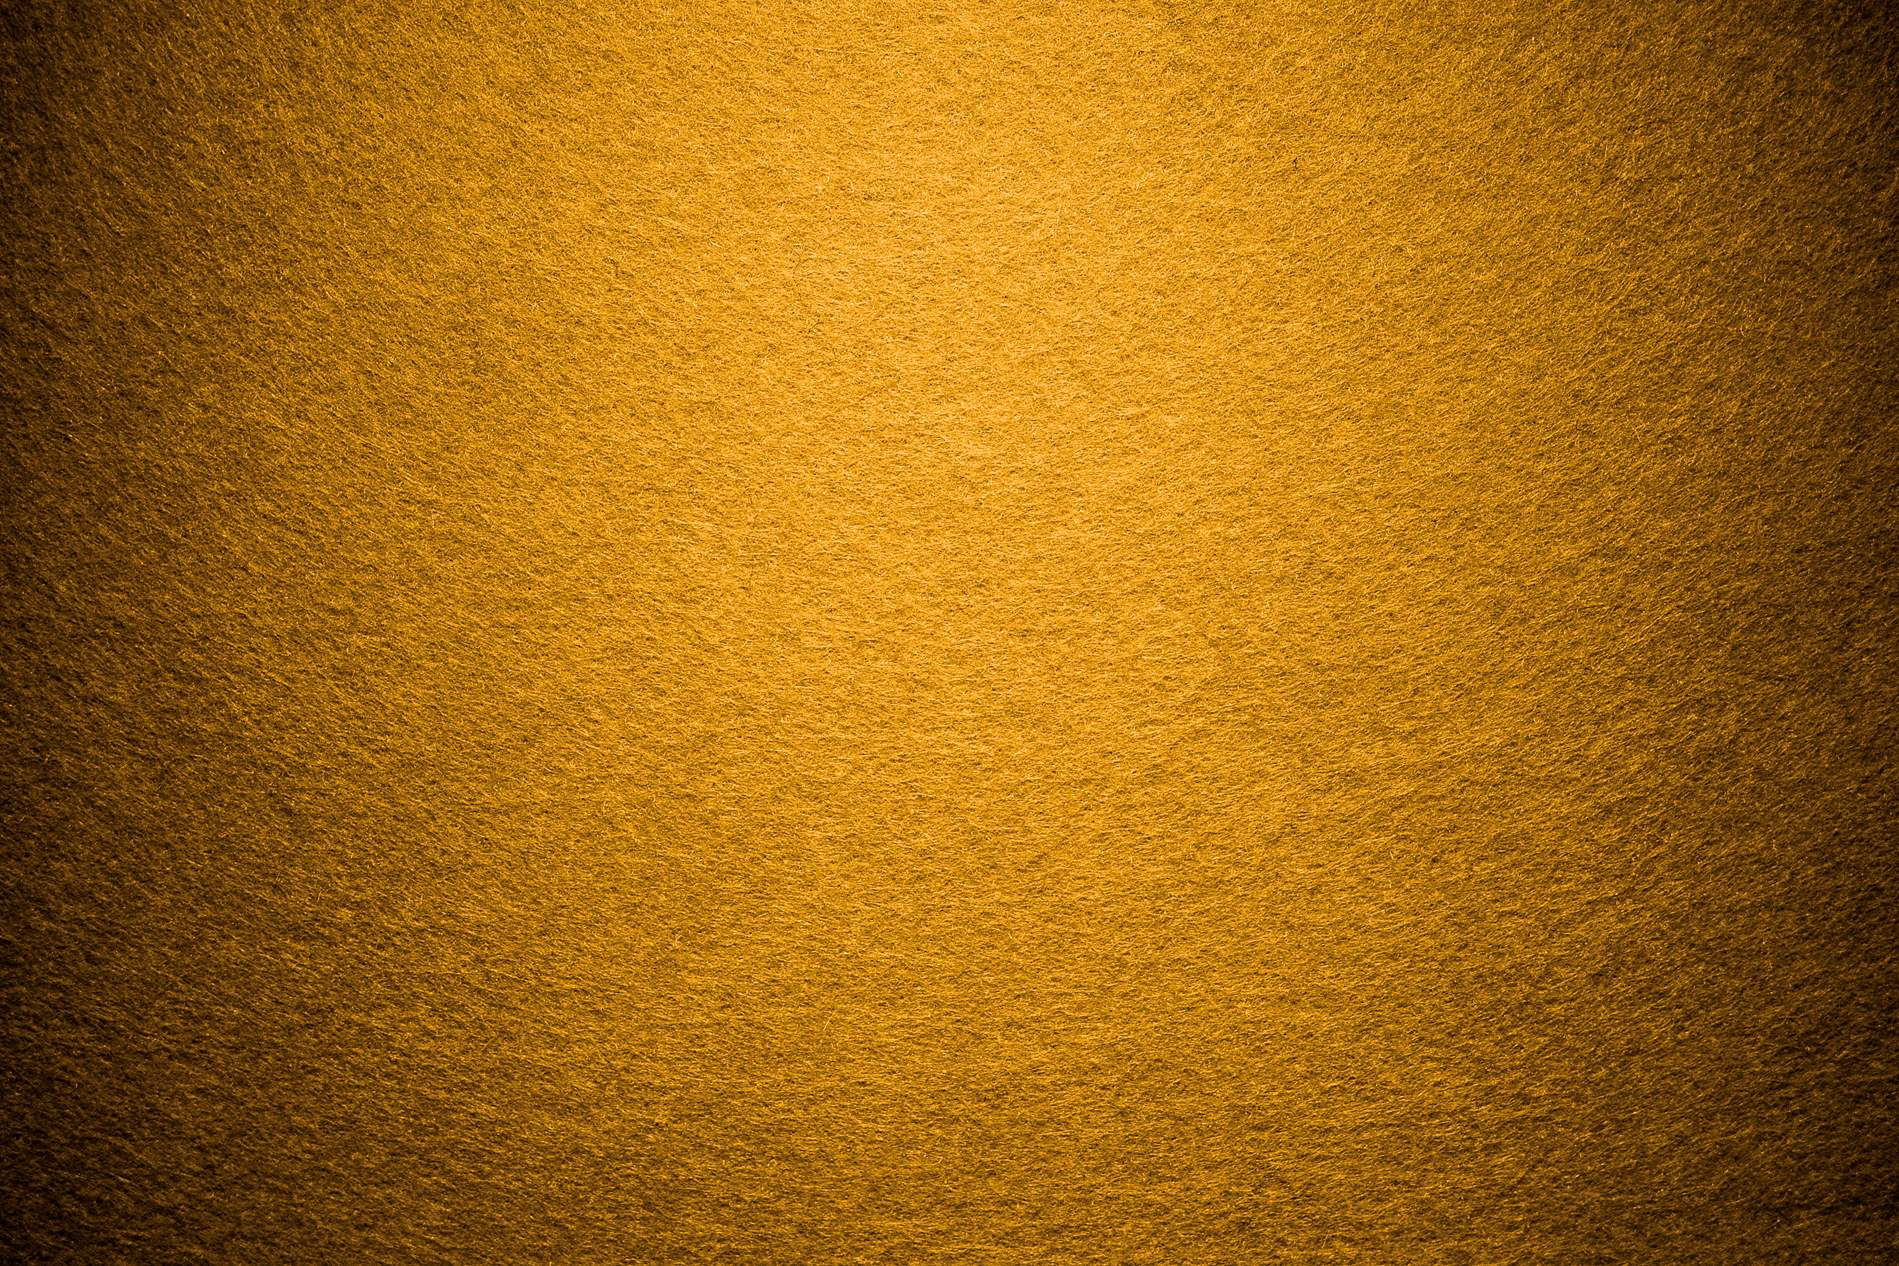 Yellow soft fabric texture background photohdx for Texture background free download